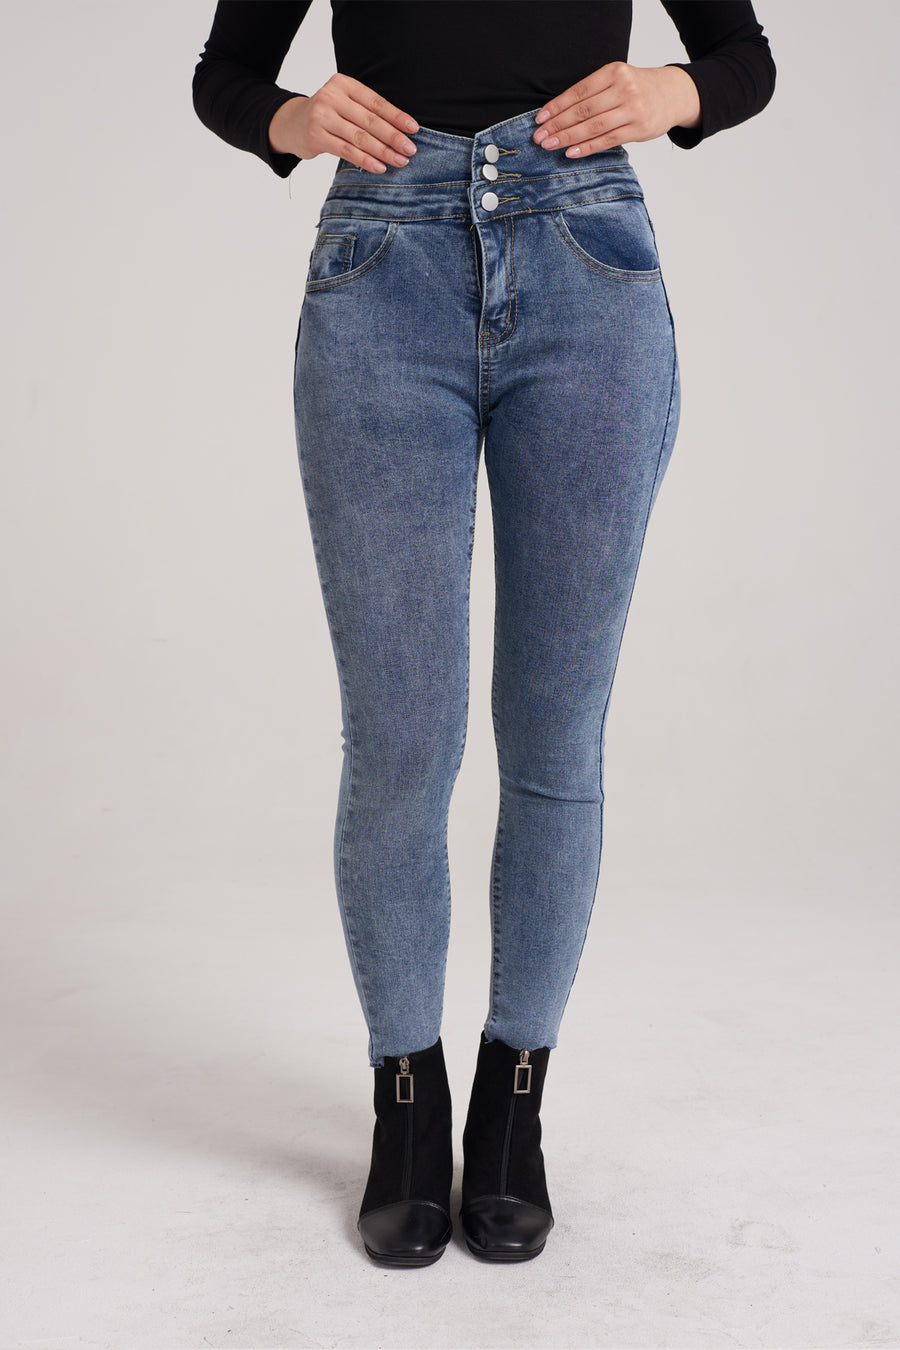 Mantra Pakistan High Waist Denim Jeans | BOTTOMS